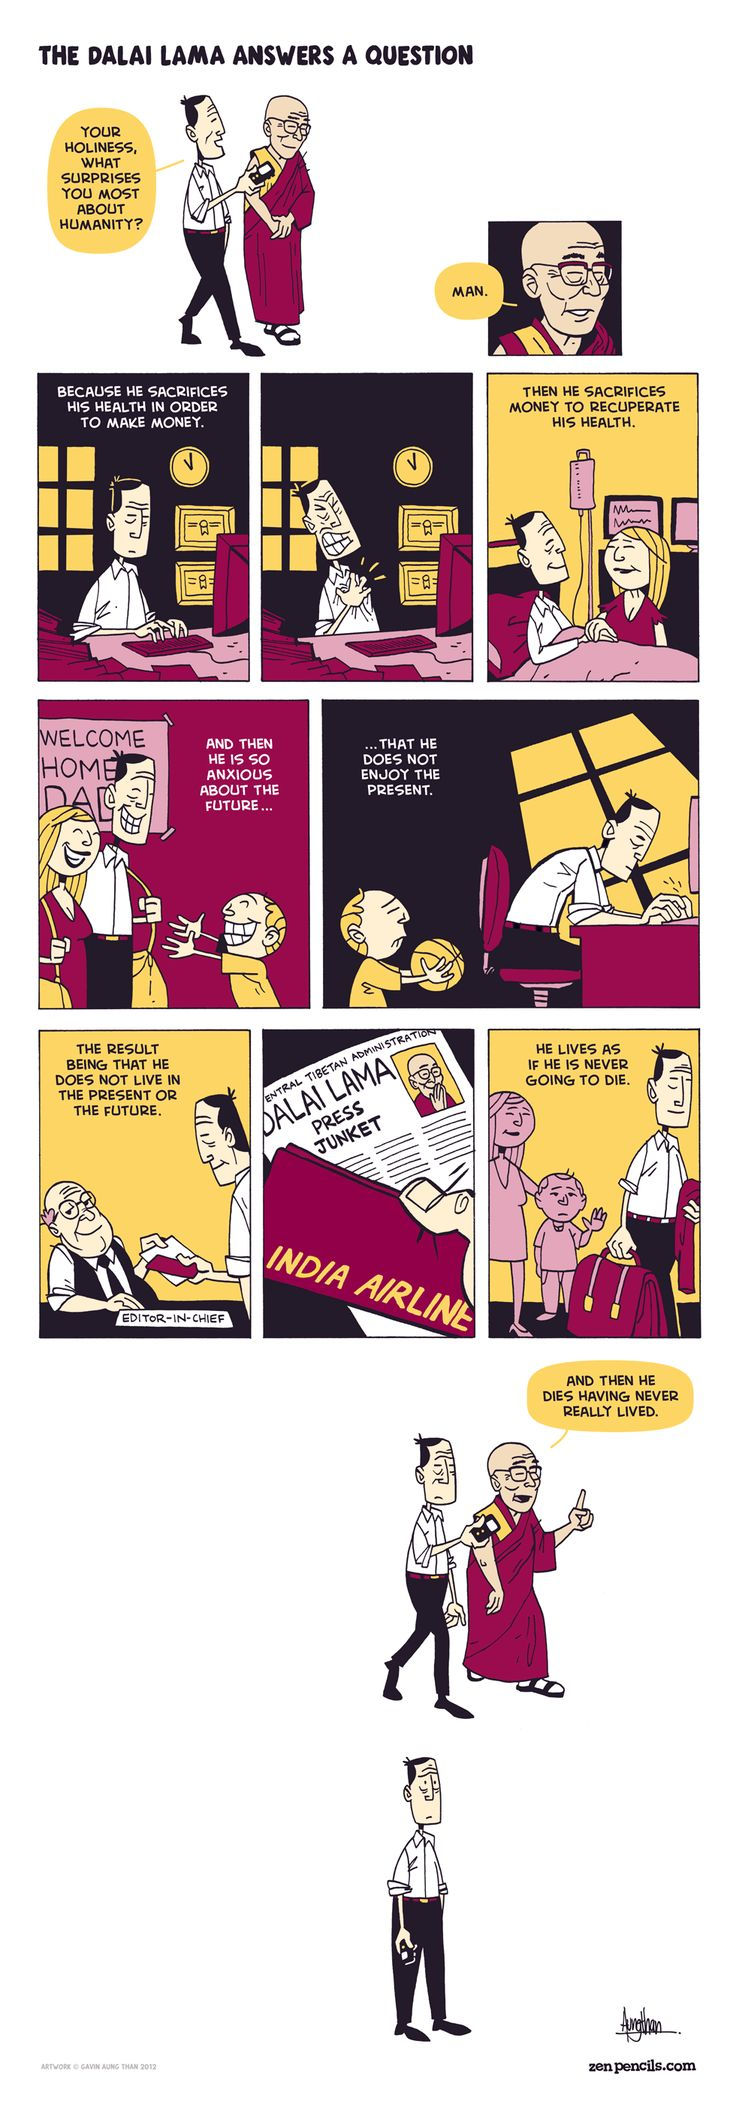 One of my favorites from zenpencils.com - Imgur